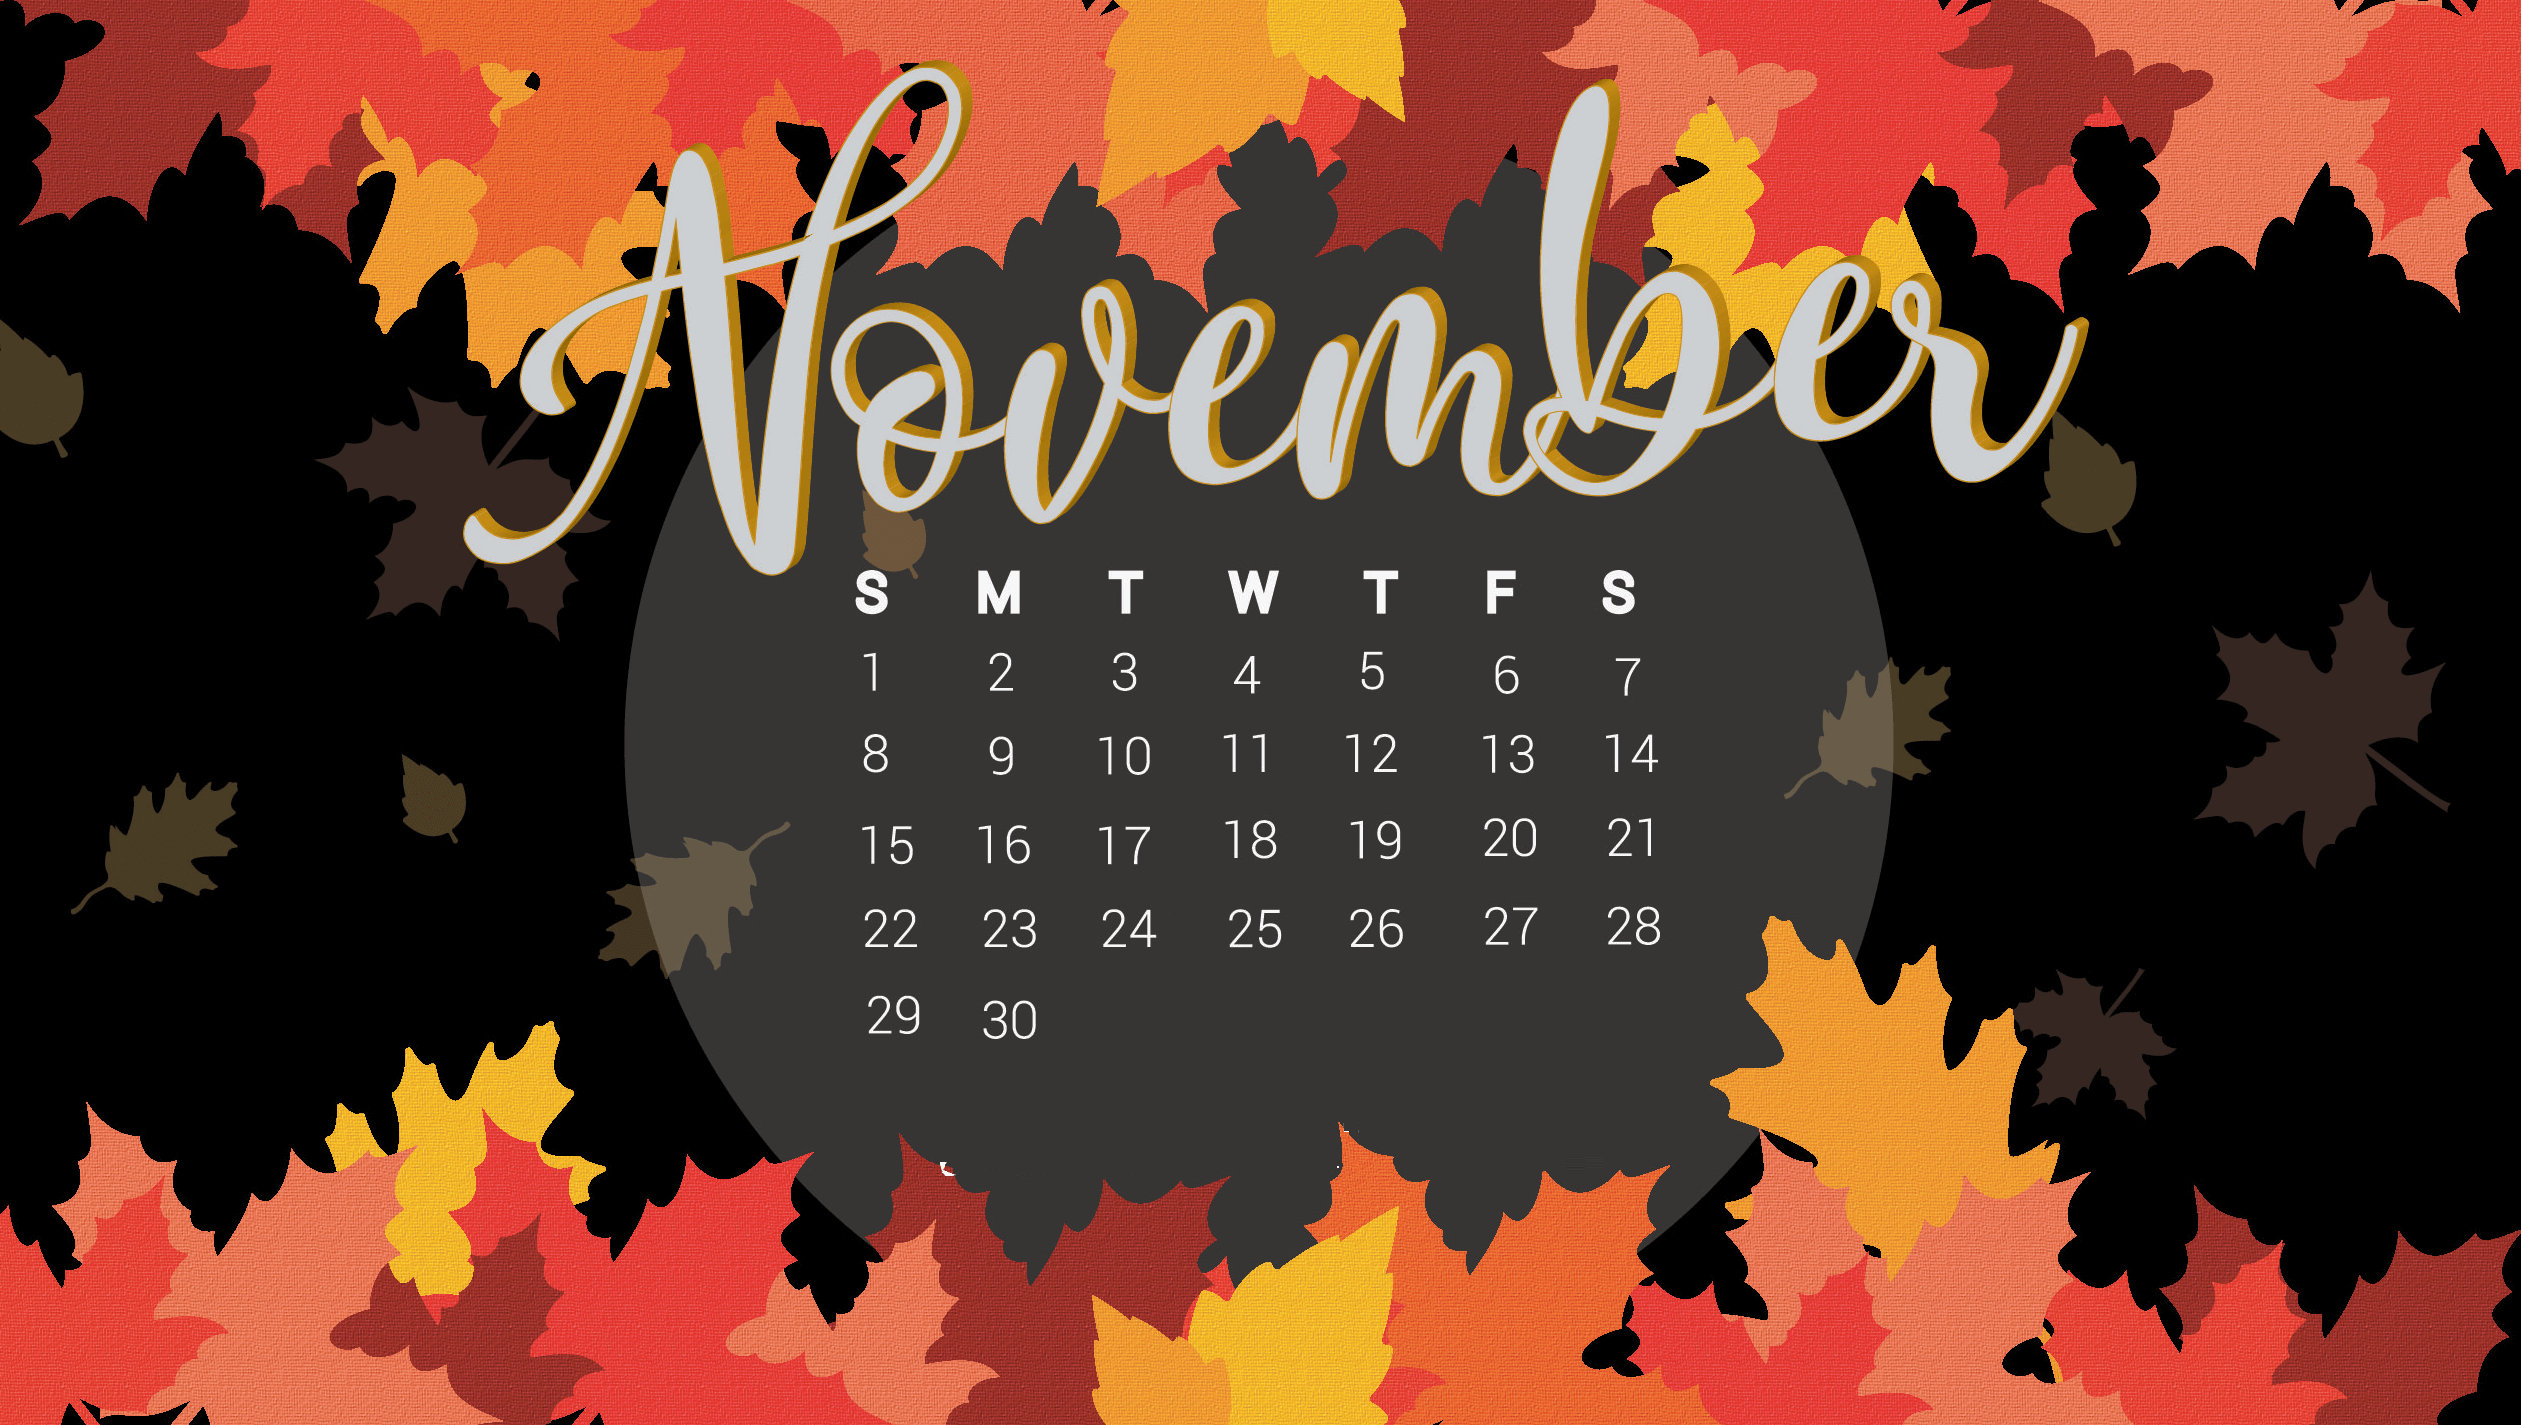 Floral November 2020 HD Calendar Wallpaper